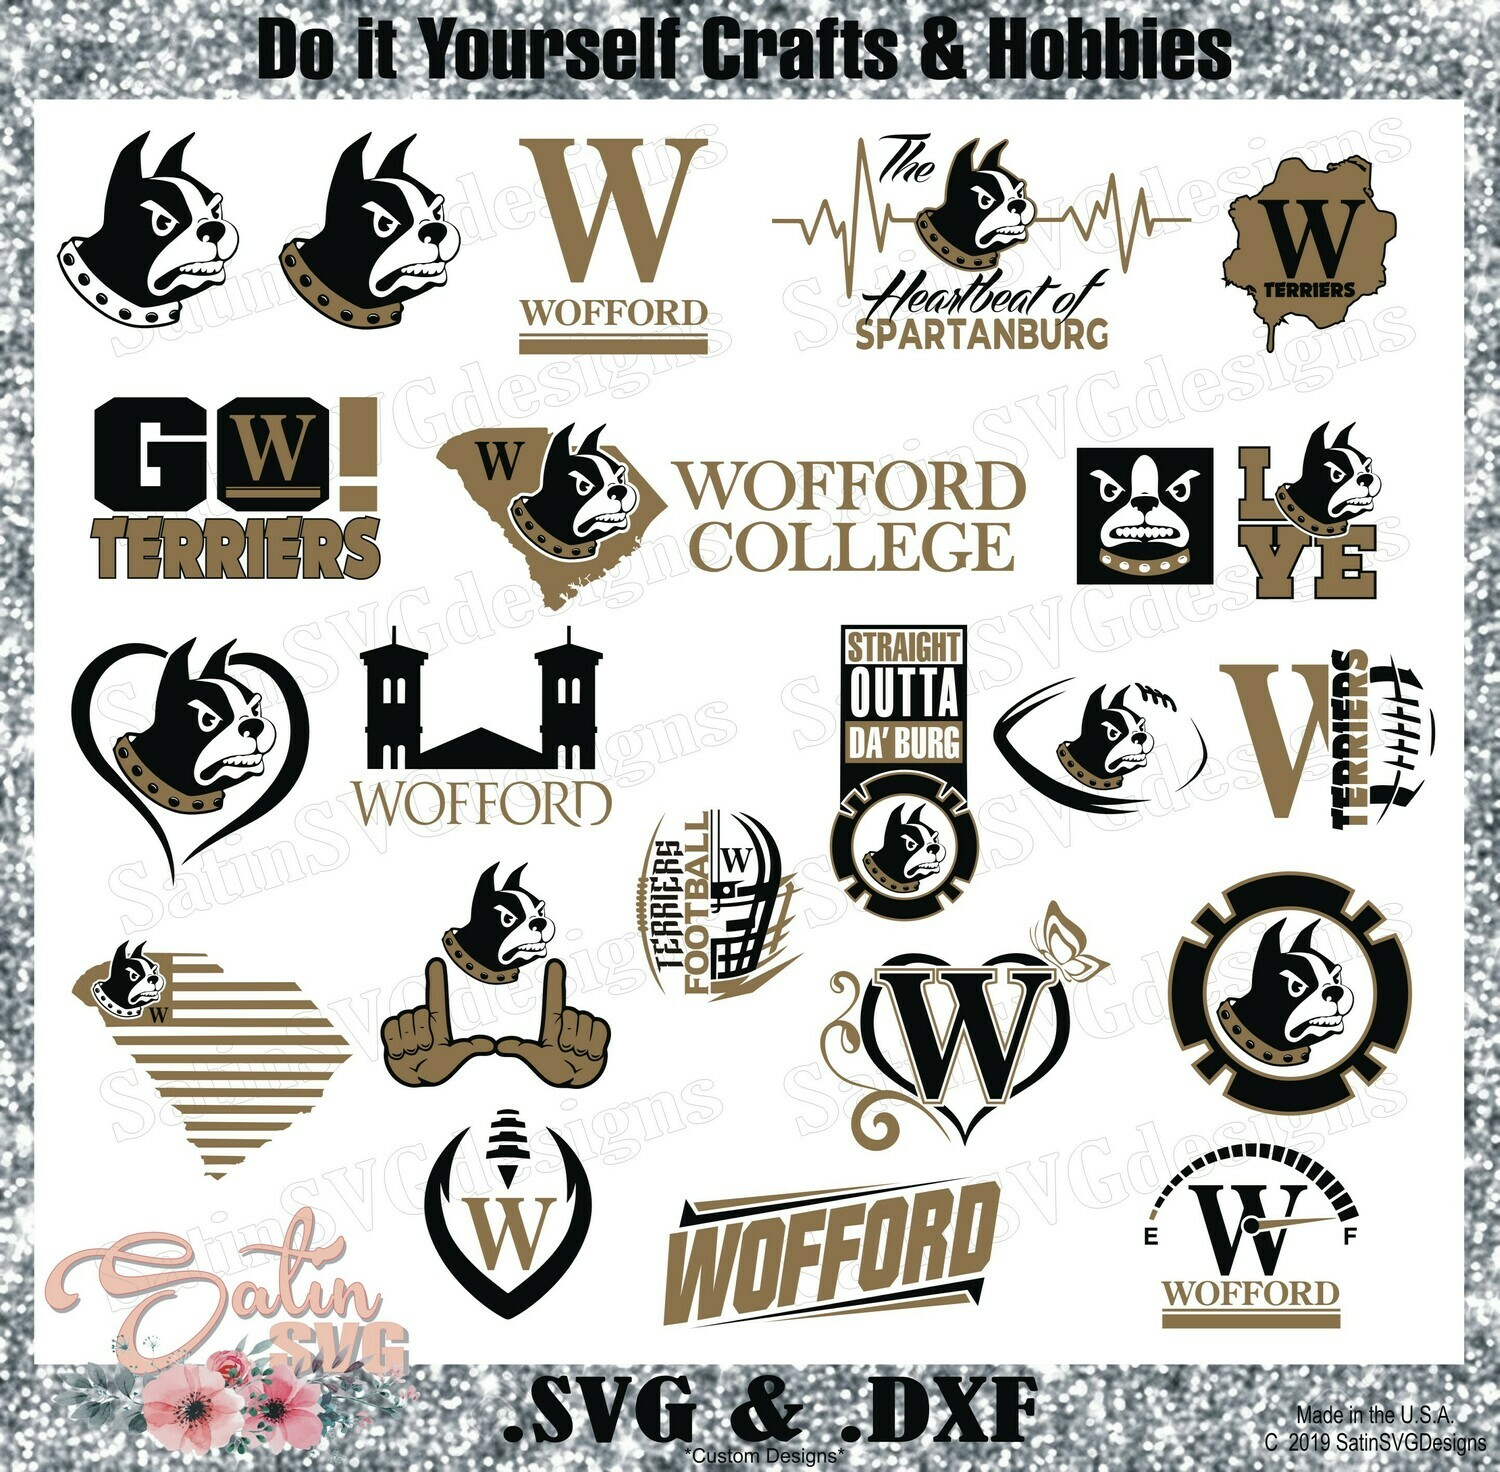 Wofford Terriers NEW Custom University Designs. SVG Files, Cricut, Silhouette Studio, Digital Cut Files, Infusible Ink